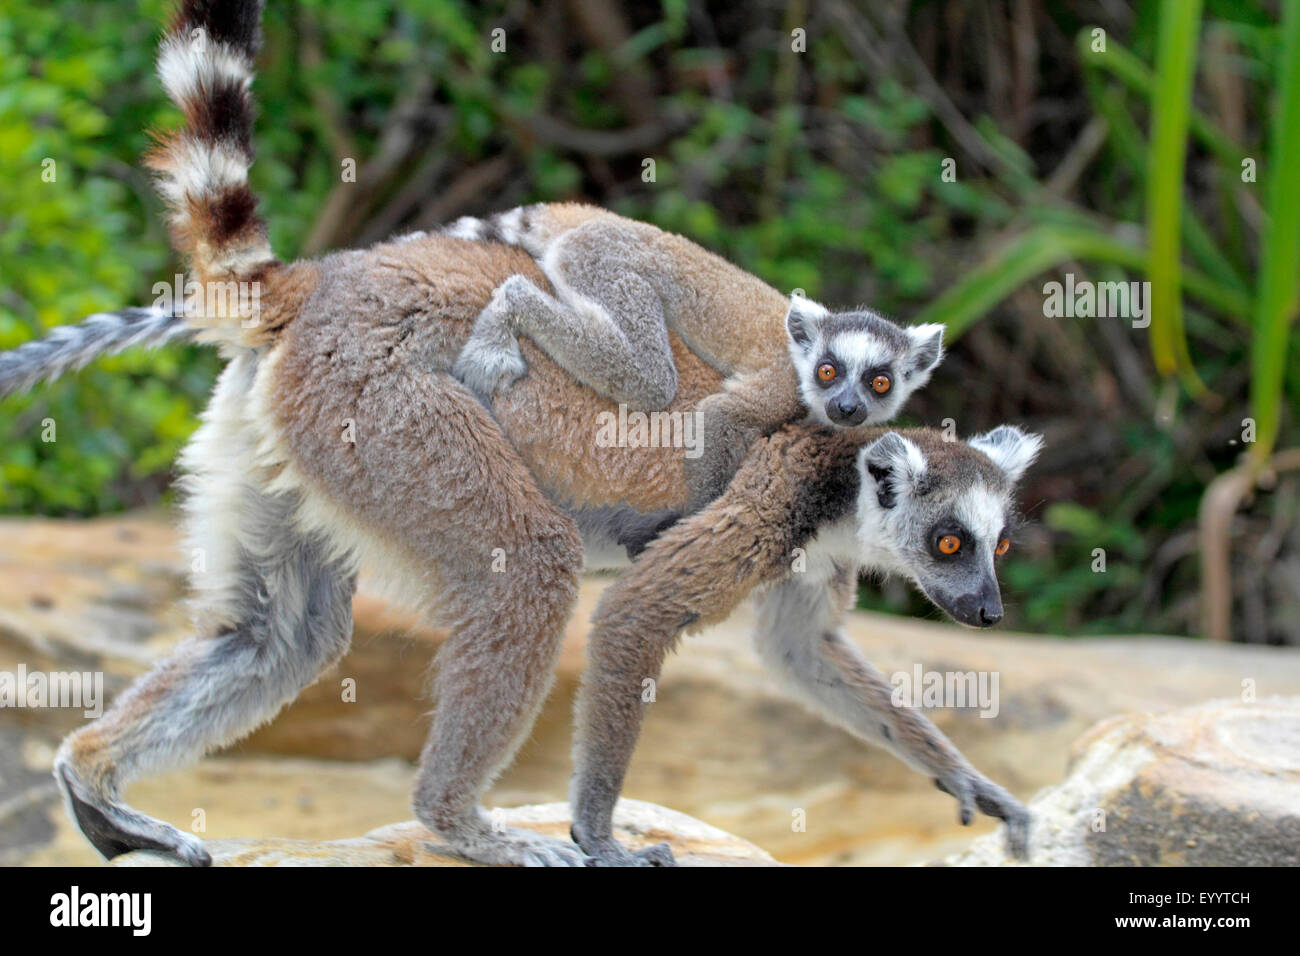 Untitled document (Lemur catta), femelle avec petit sur son dos, Madagascar, le Parc National de l'Andringitra Photo Stock